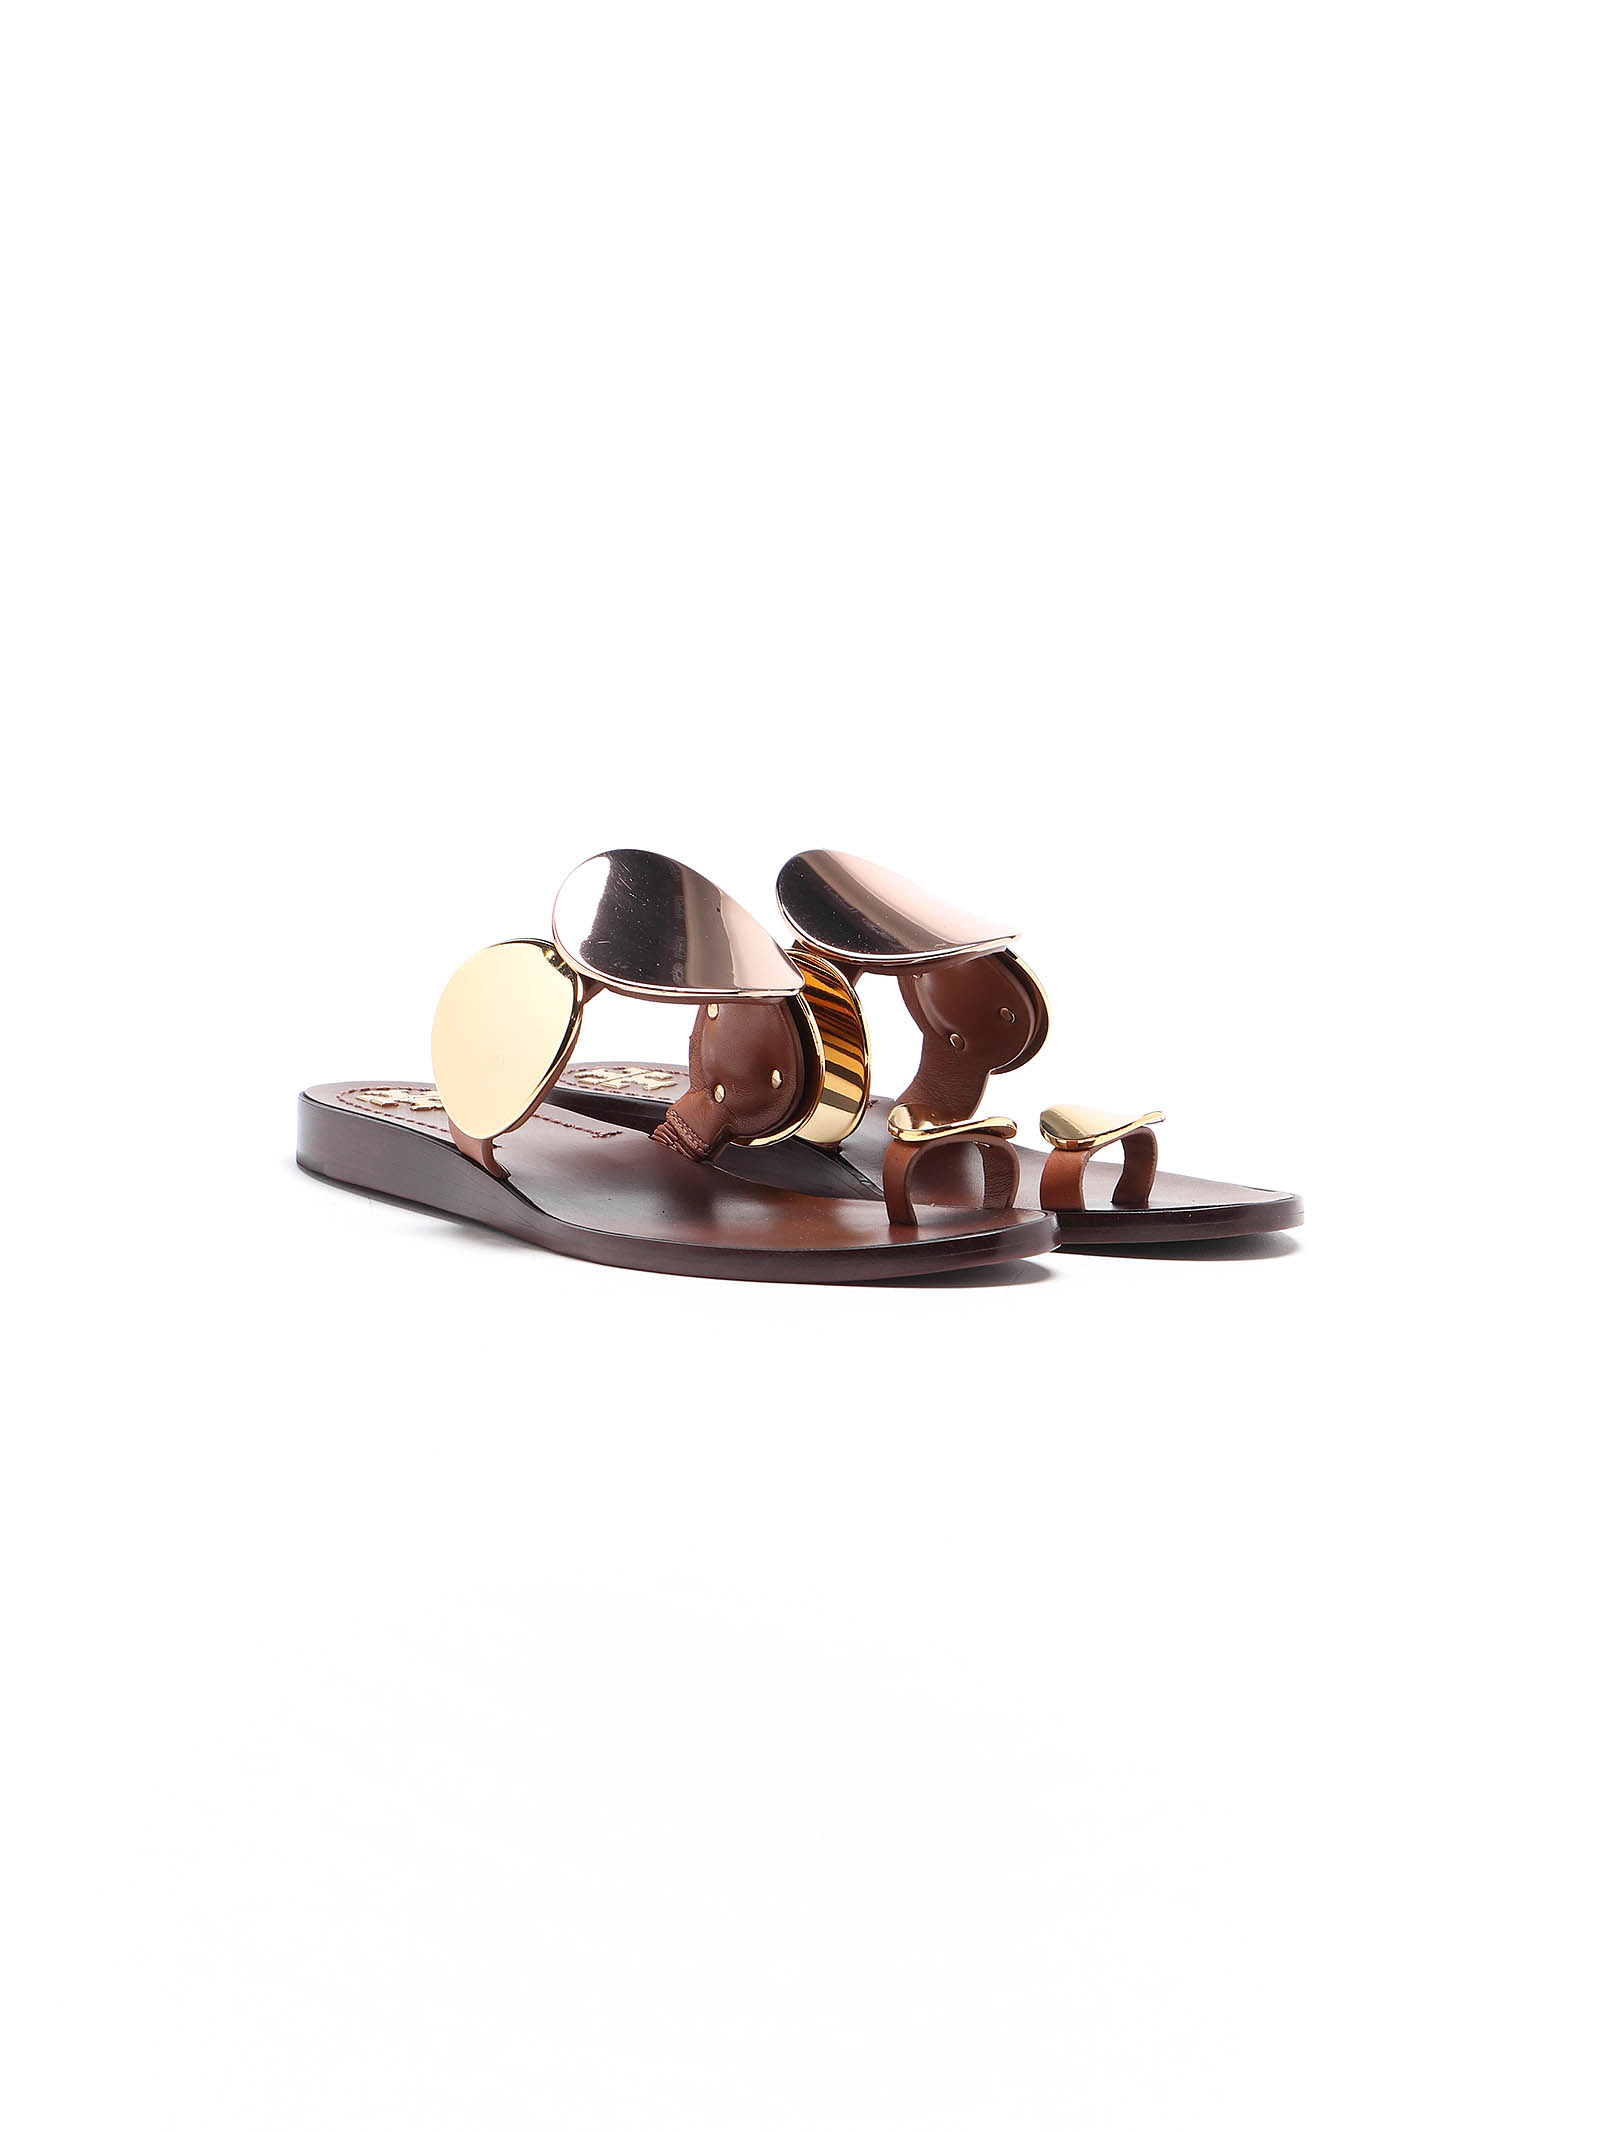 Picture of Tory Burch   Patos Multi Disk Sandal